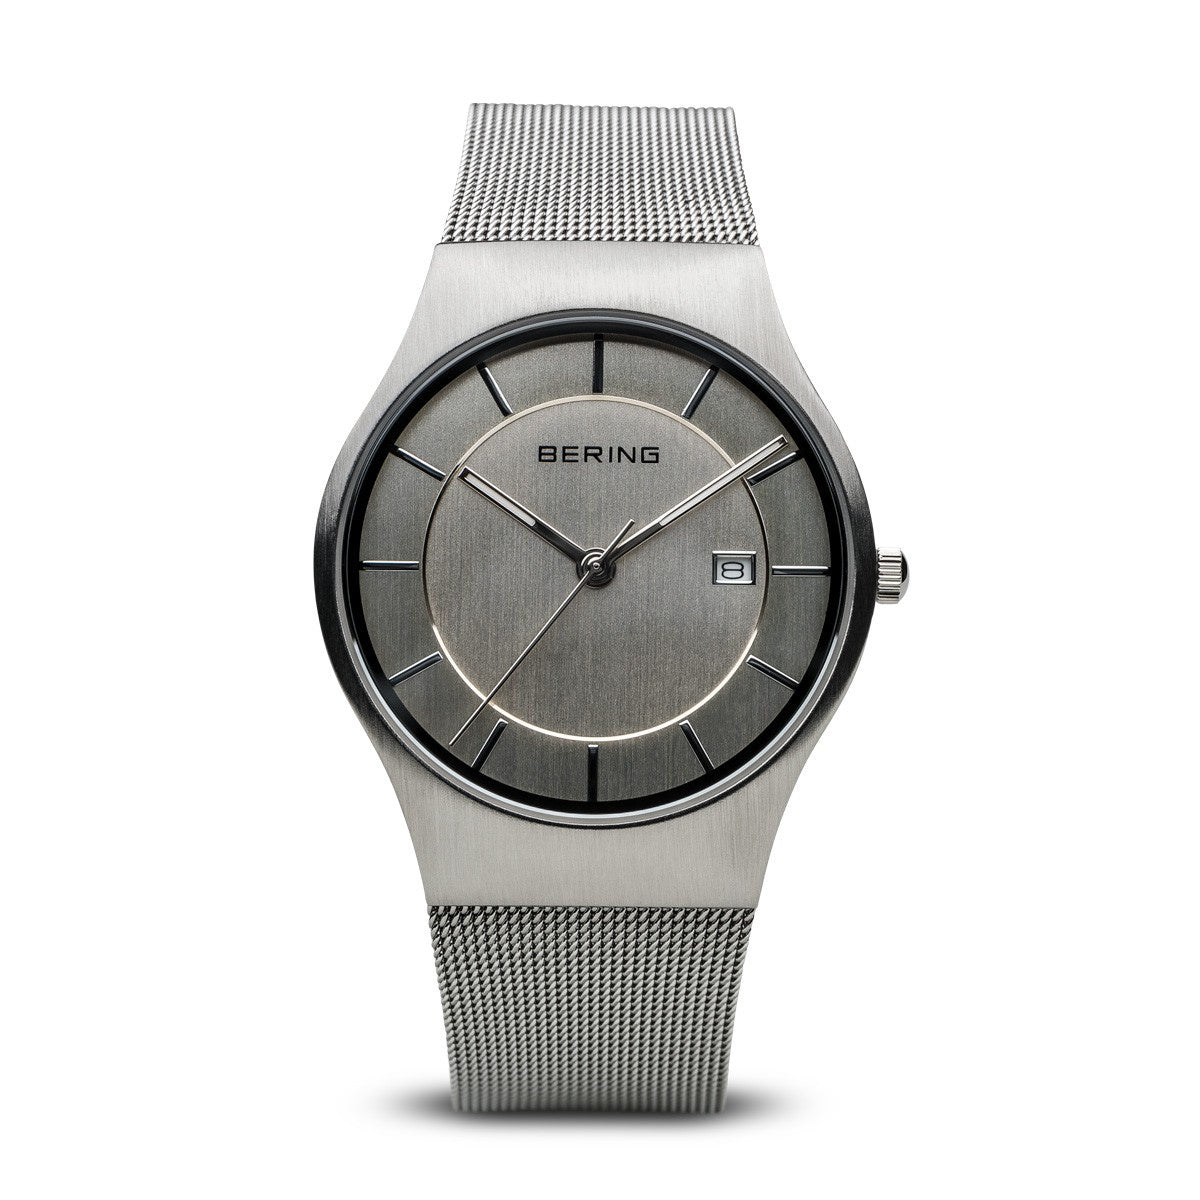 Bering Mens Classic Brushed Silver Watch 11938-000 - Robert Openshaw Fine Jewellery